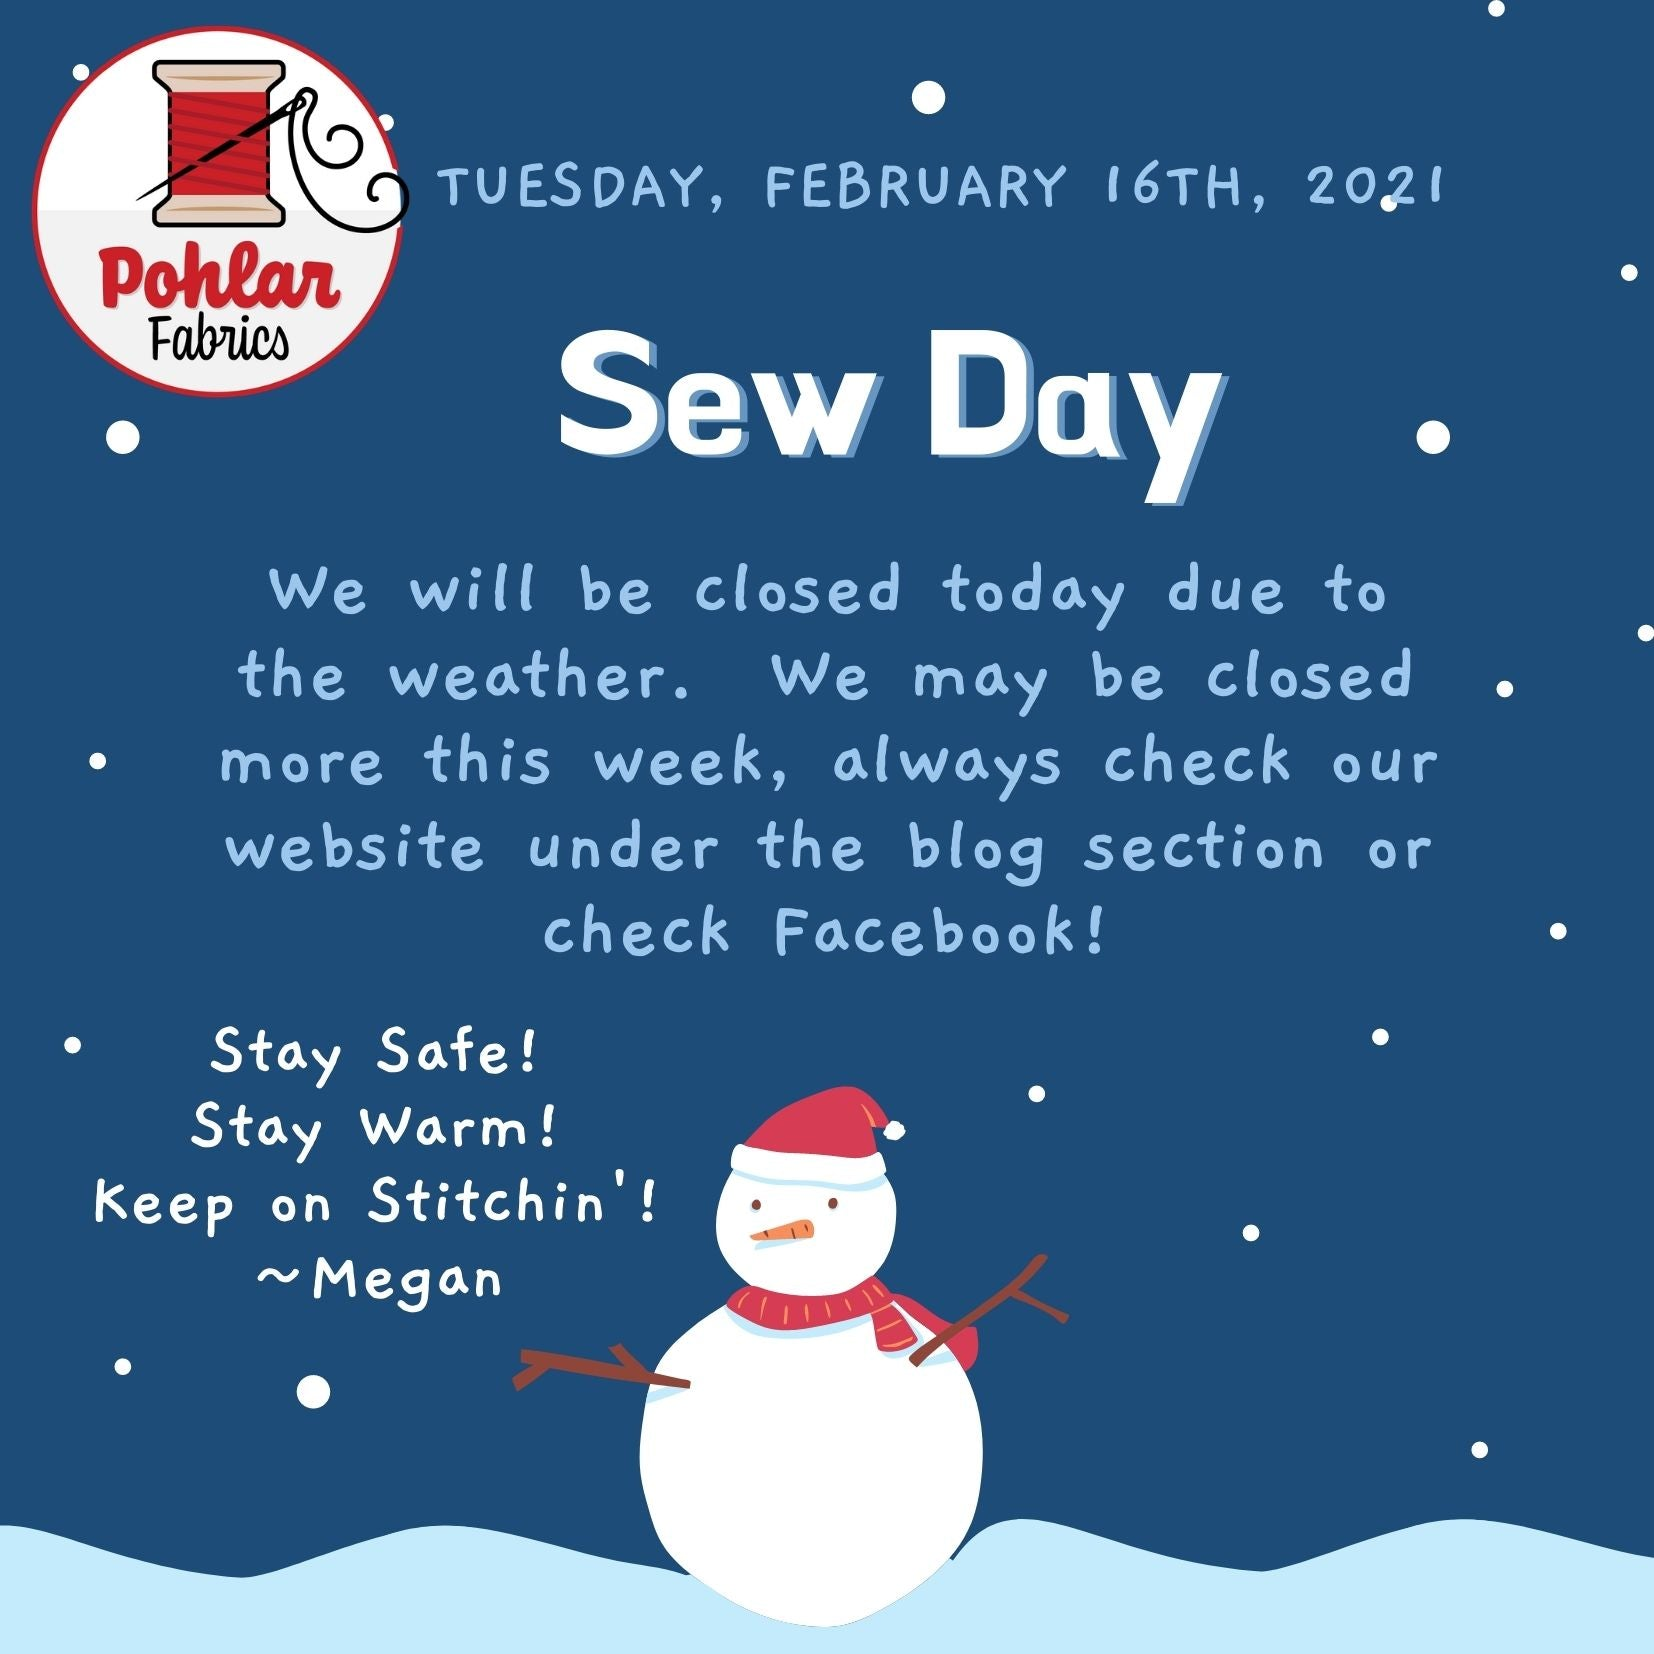 Closed Tuesday February 16th, 2021